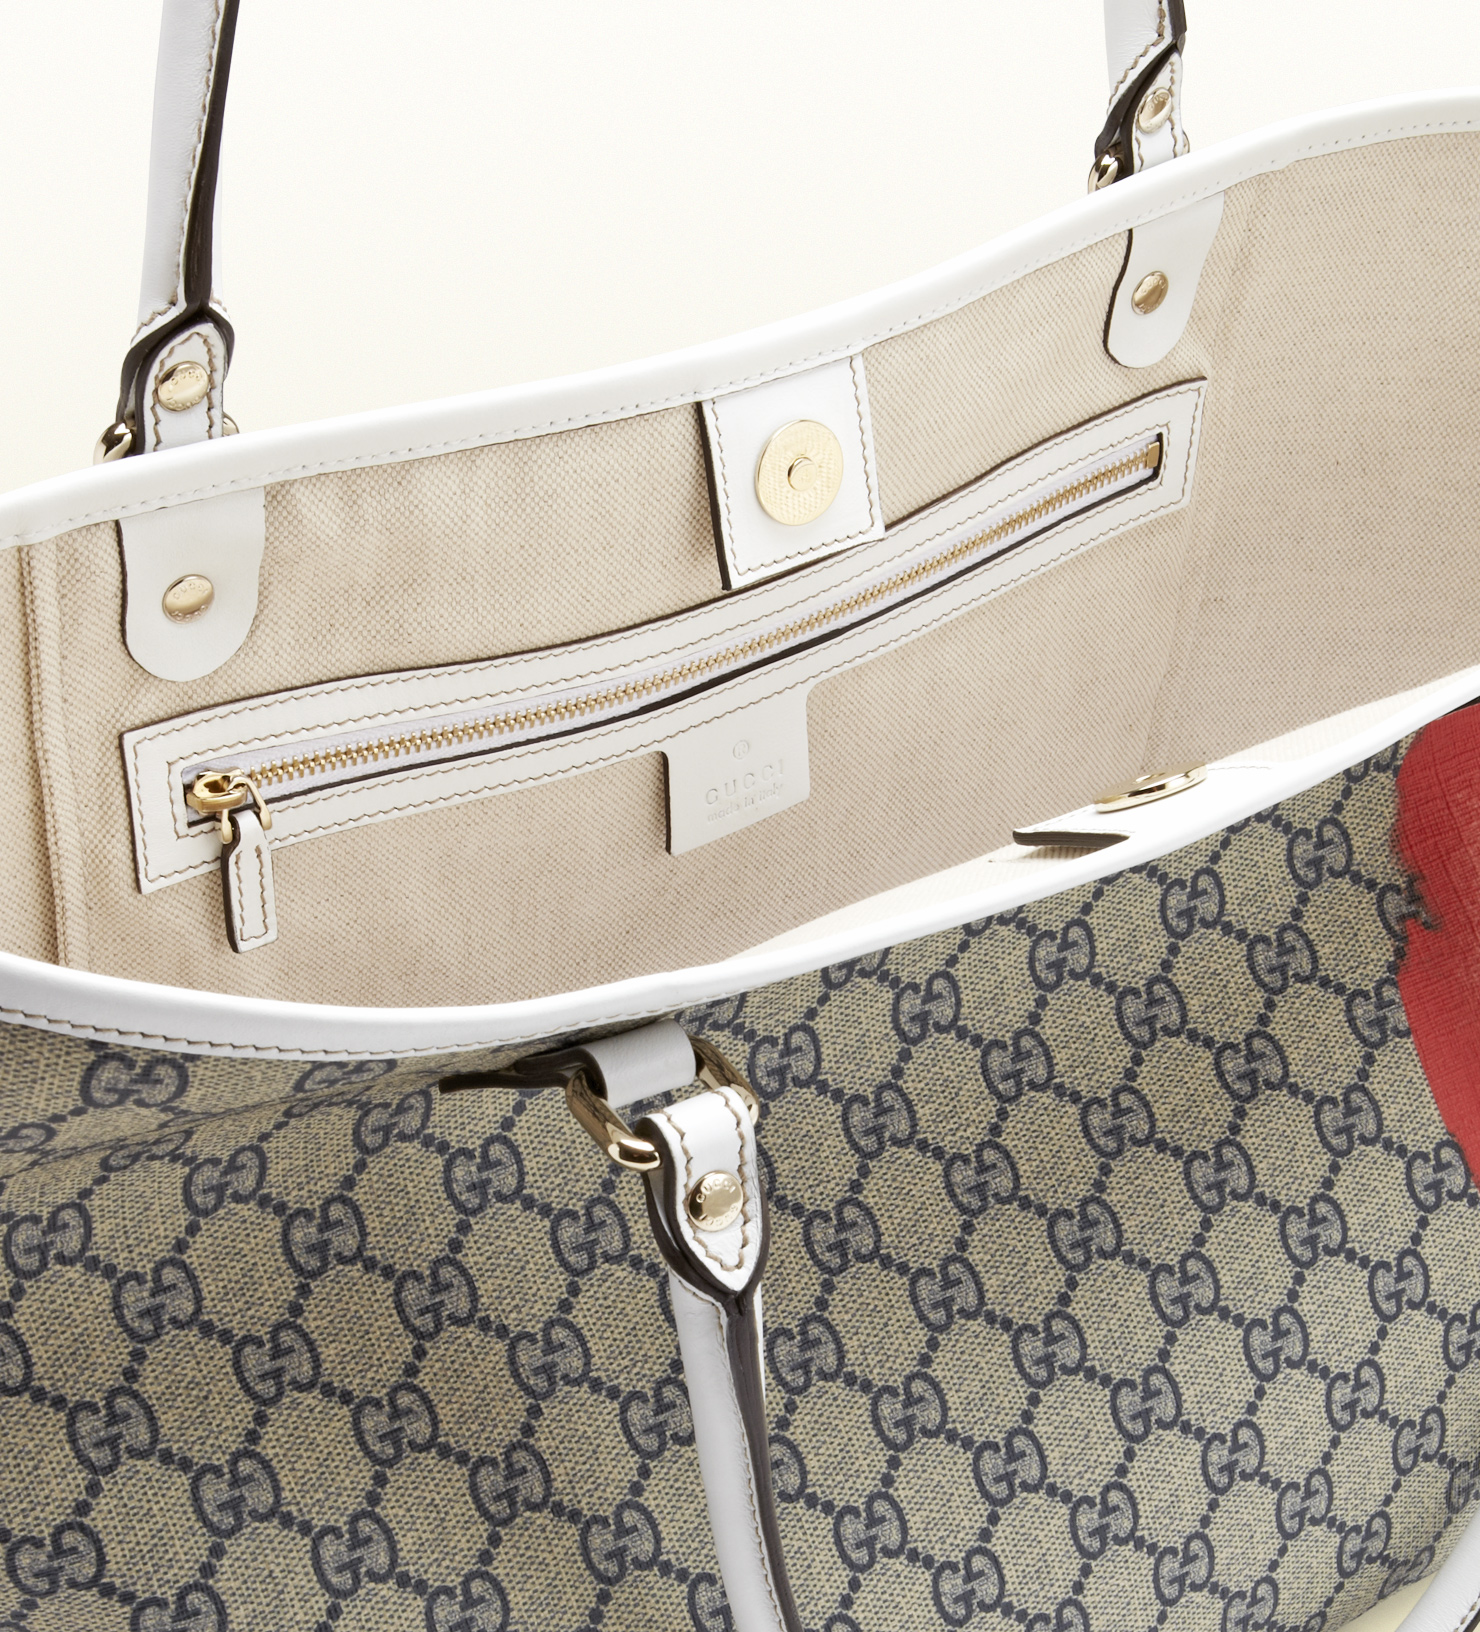 520c53f1a095 Gucci Canada Gg Flag Collection Tote in Gray - Lyst